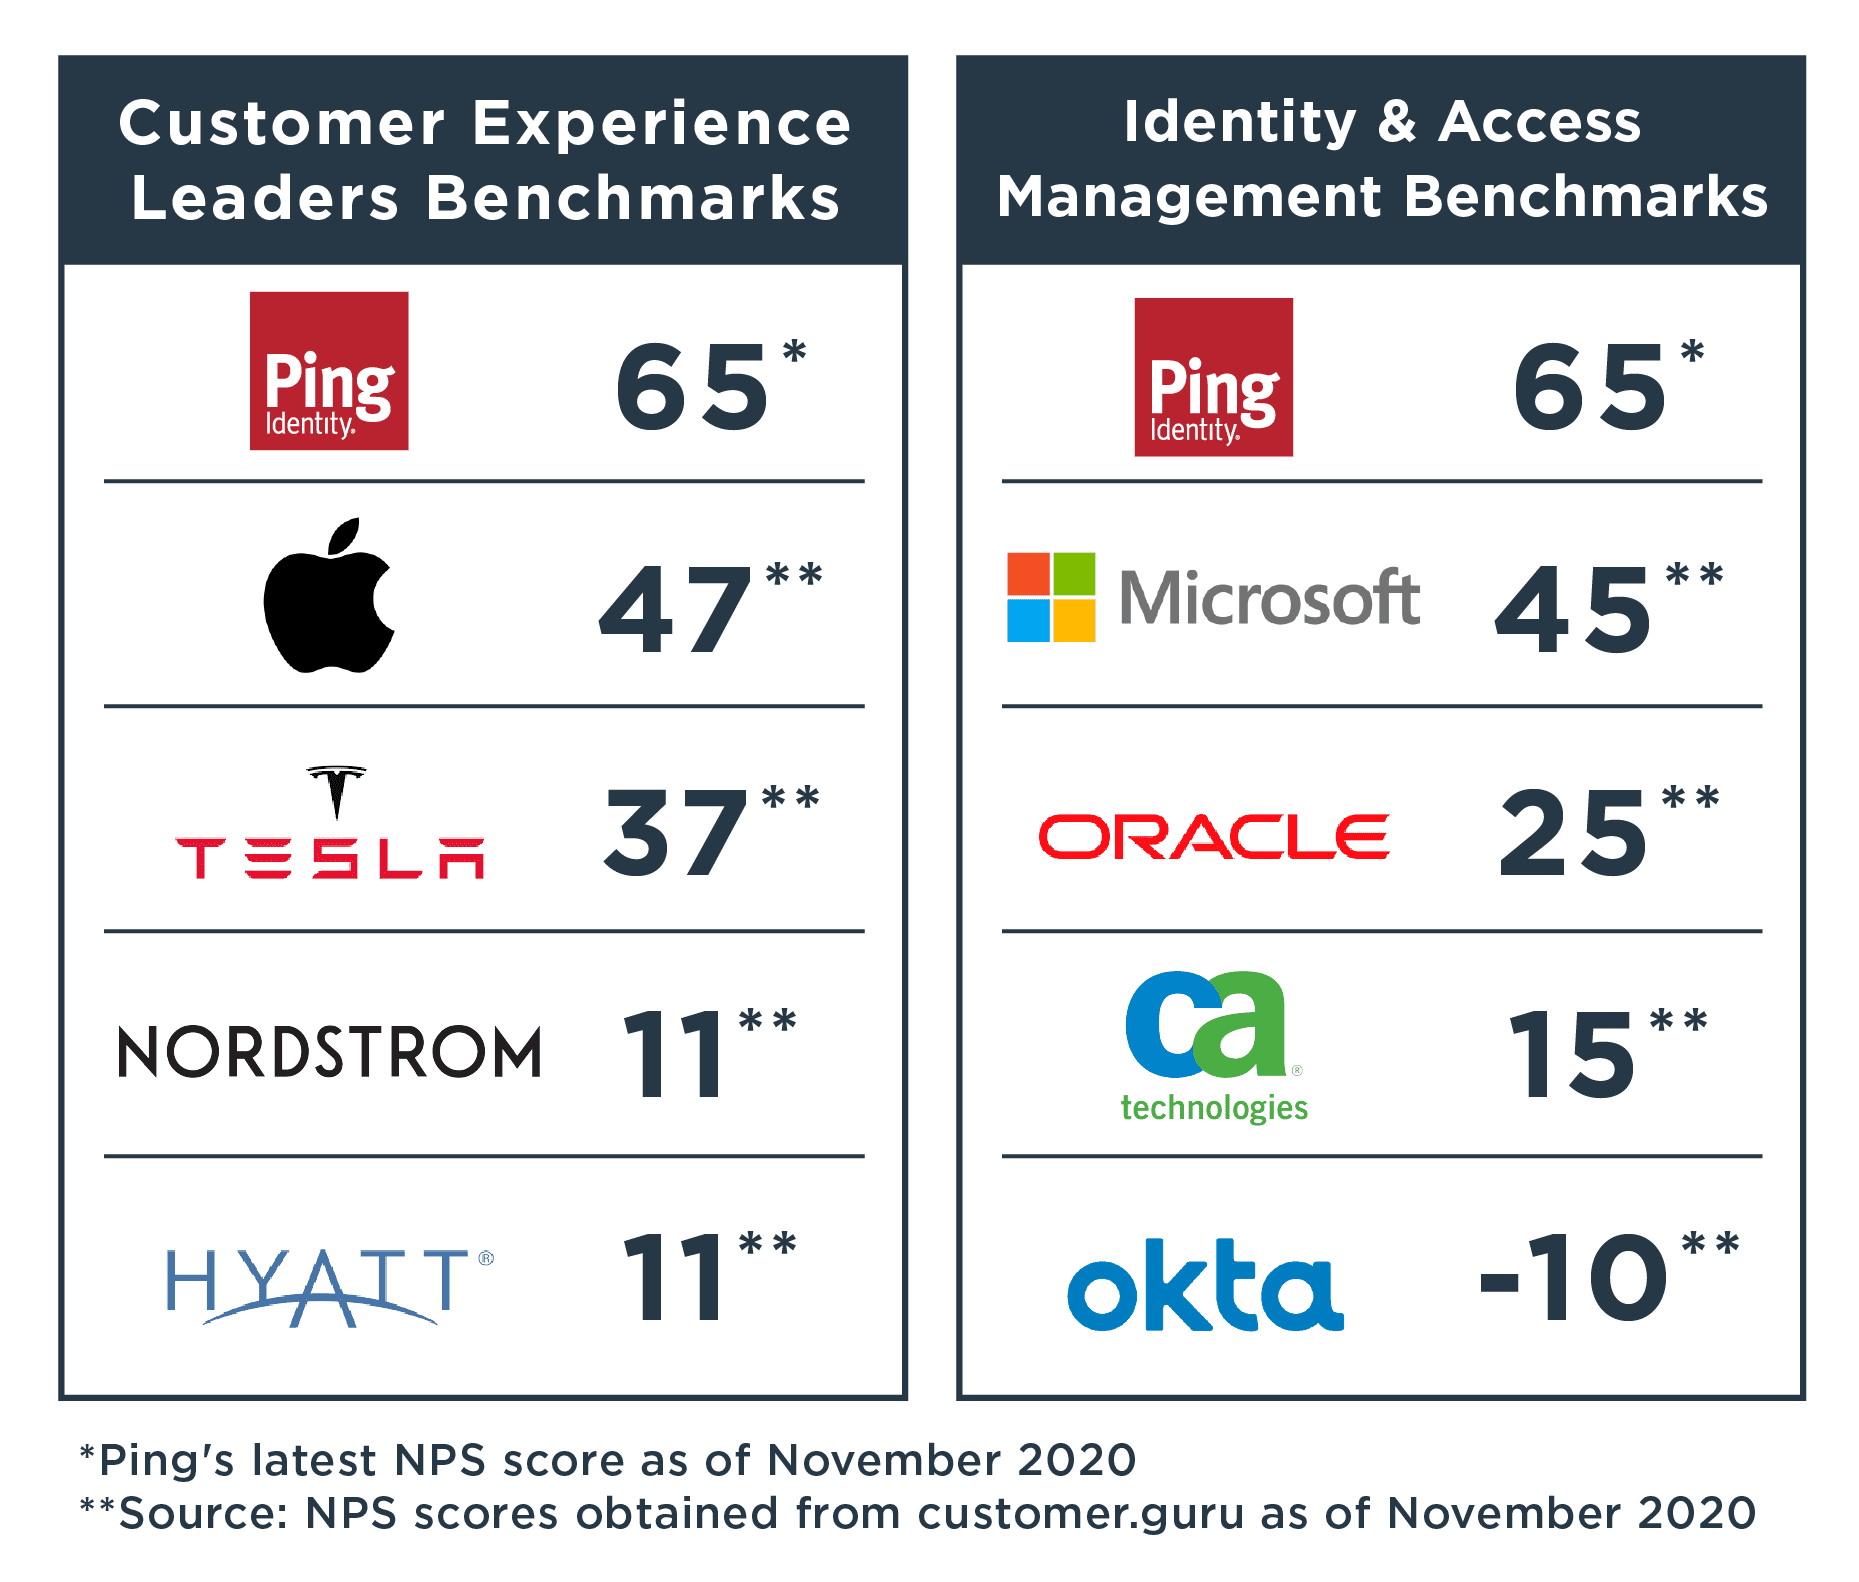 ping identity benchmarks for customer experience and IAM